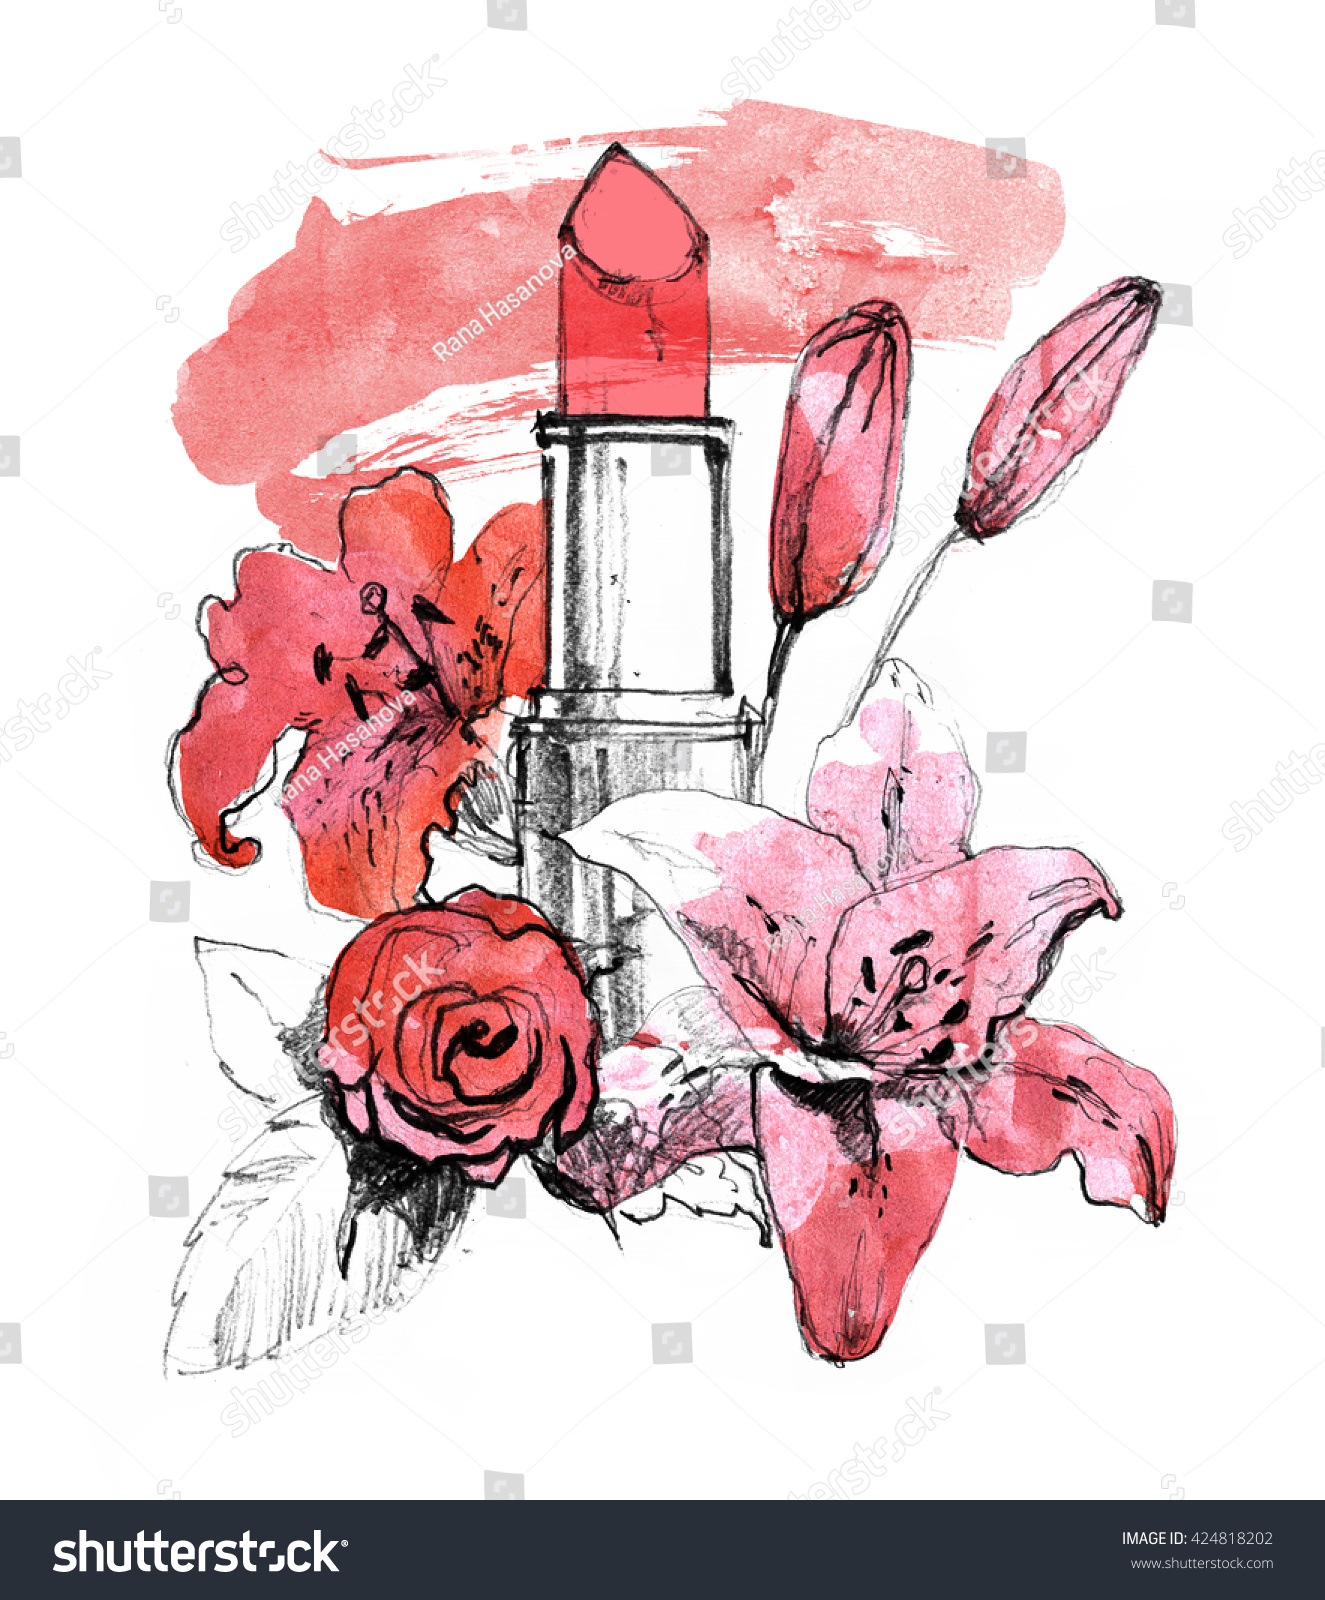 Red Lipstick Lily Rose Flowers Smudge Stock Illustration 424818202